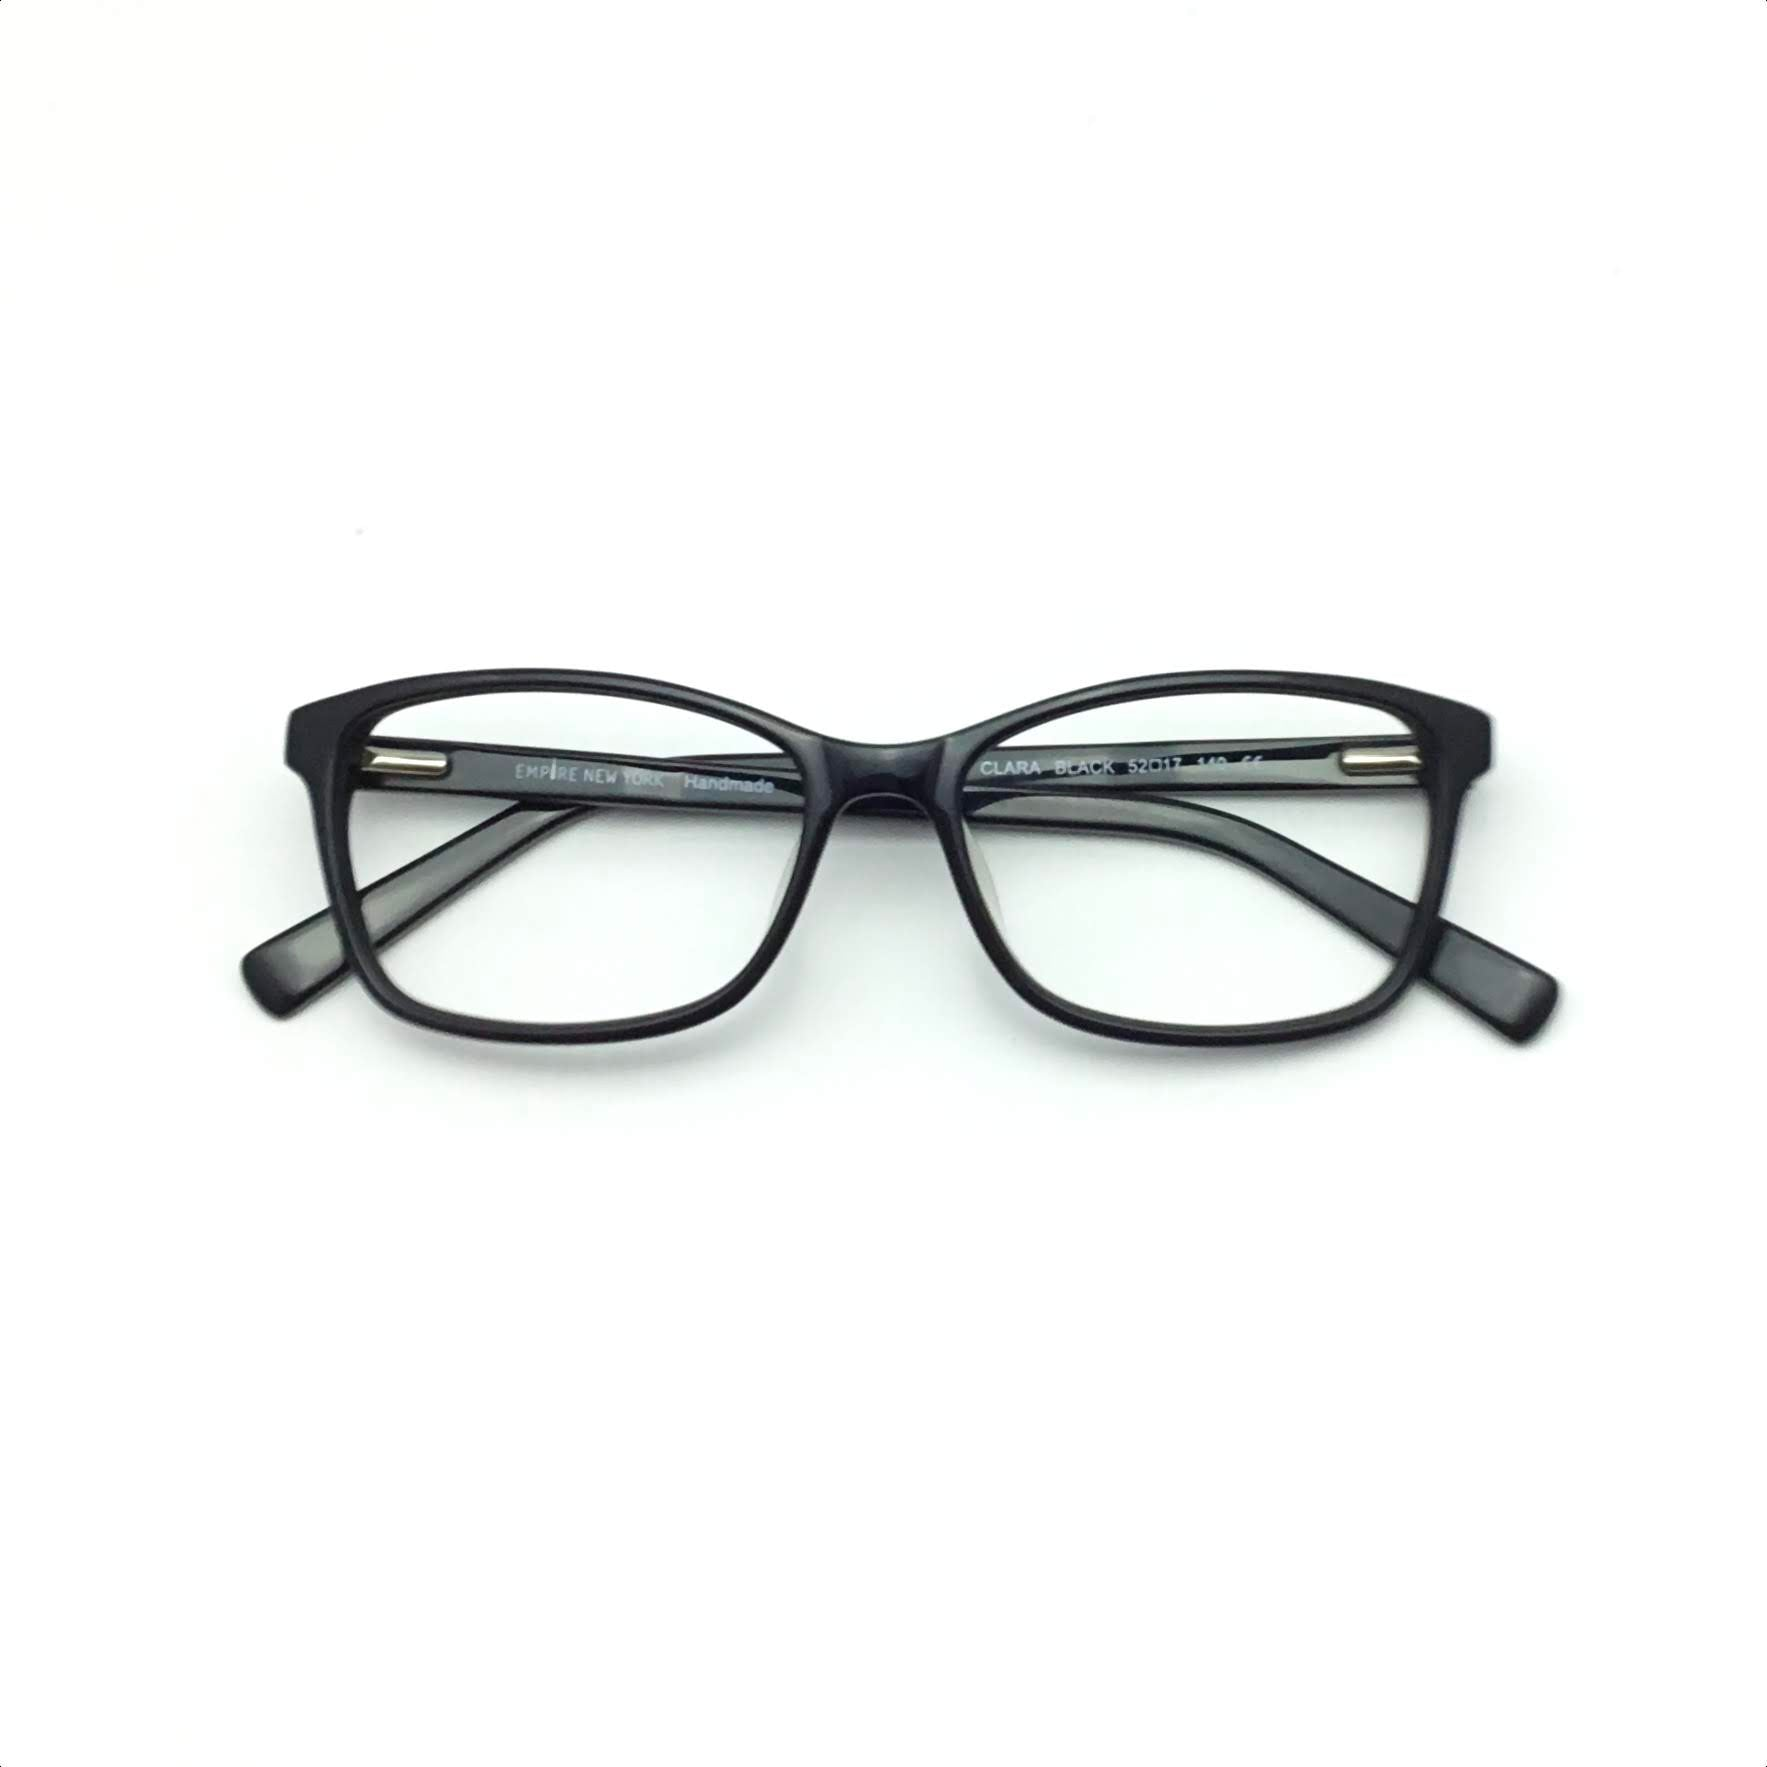 Empire New York Glasses $149 SPECIAL E4